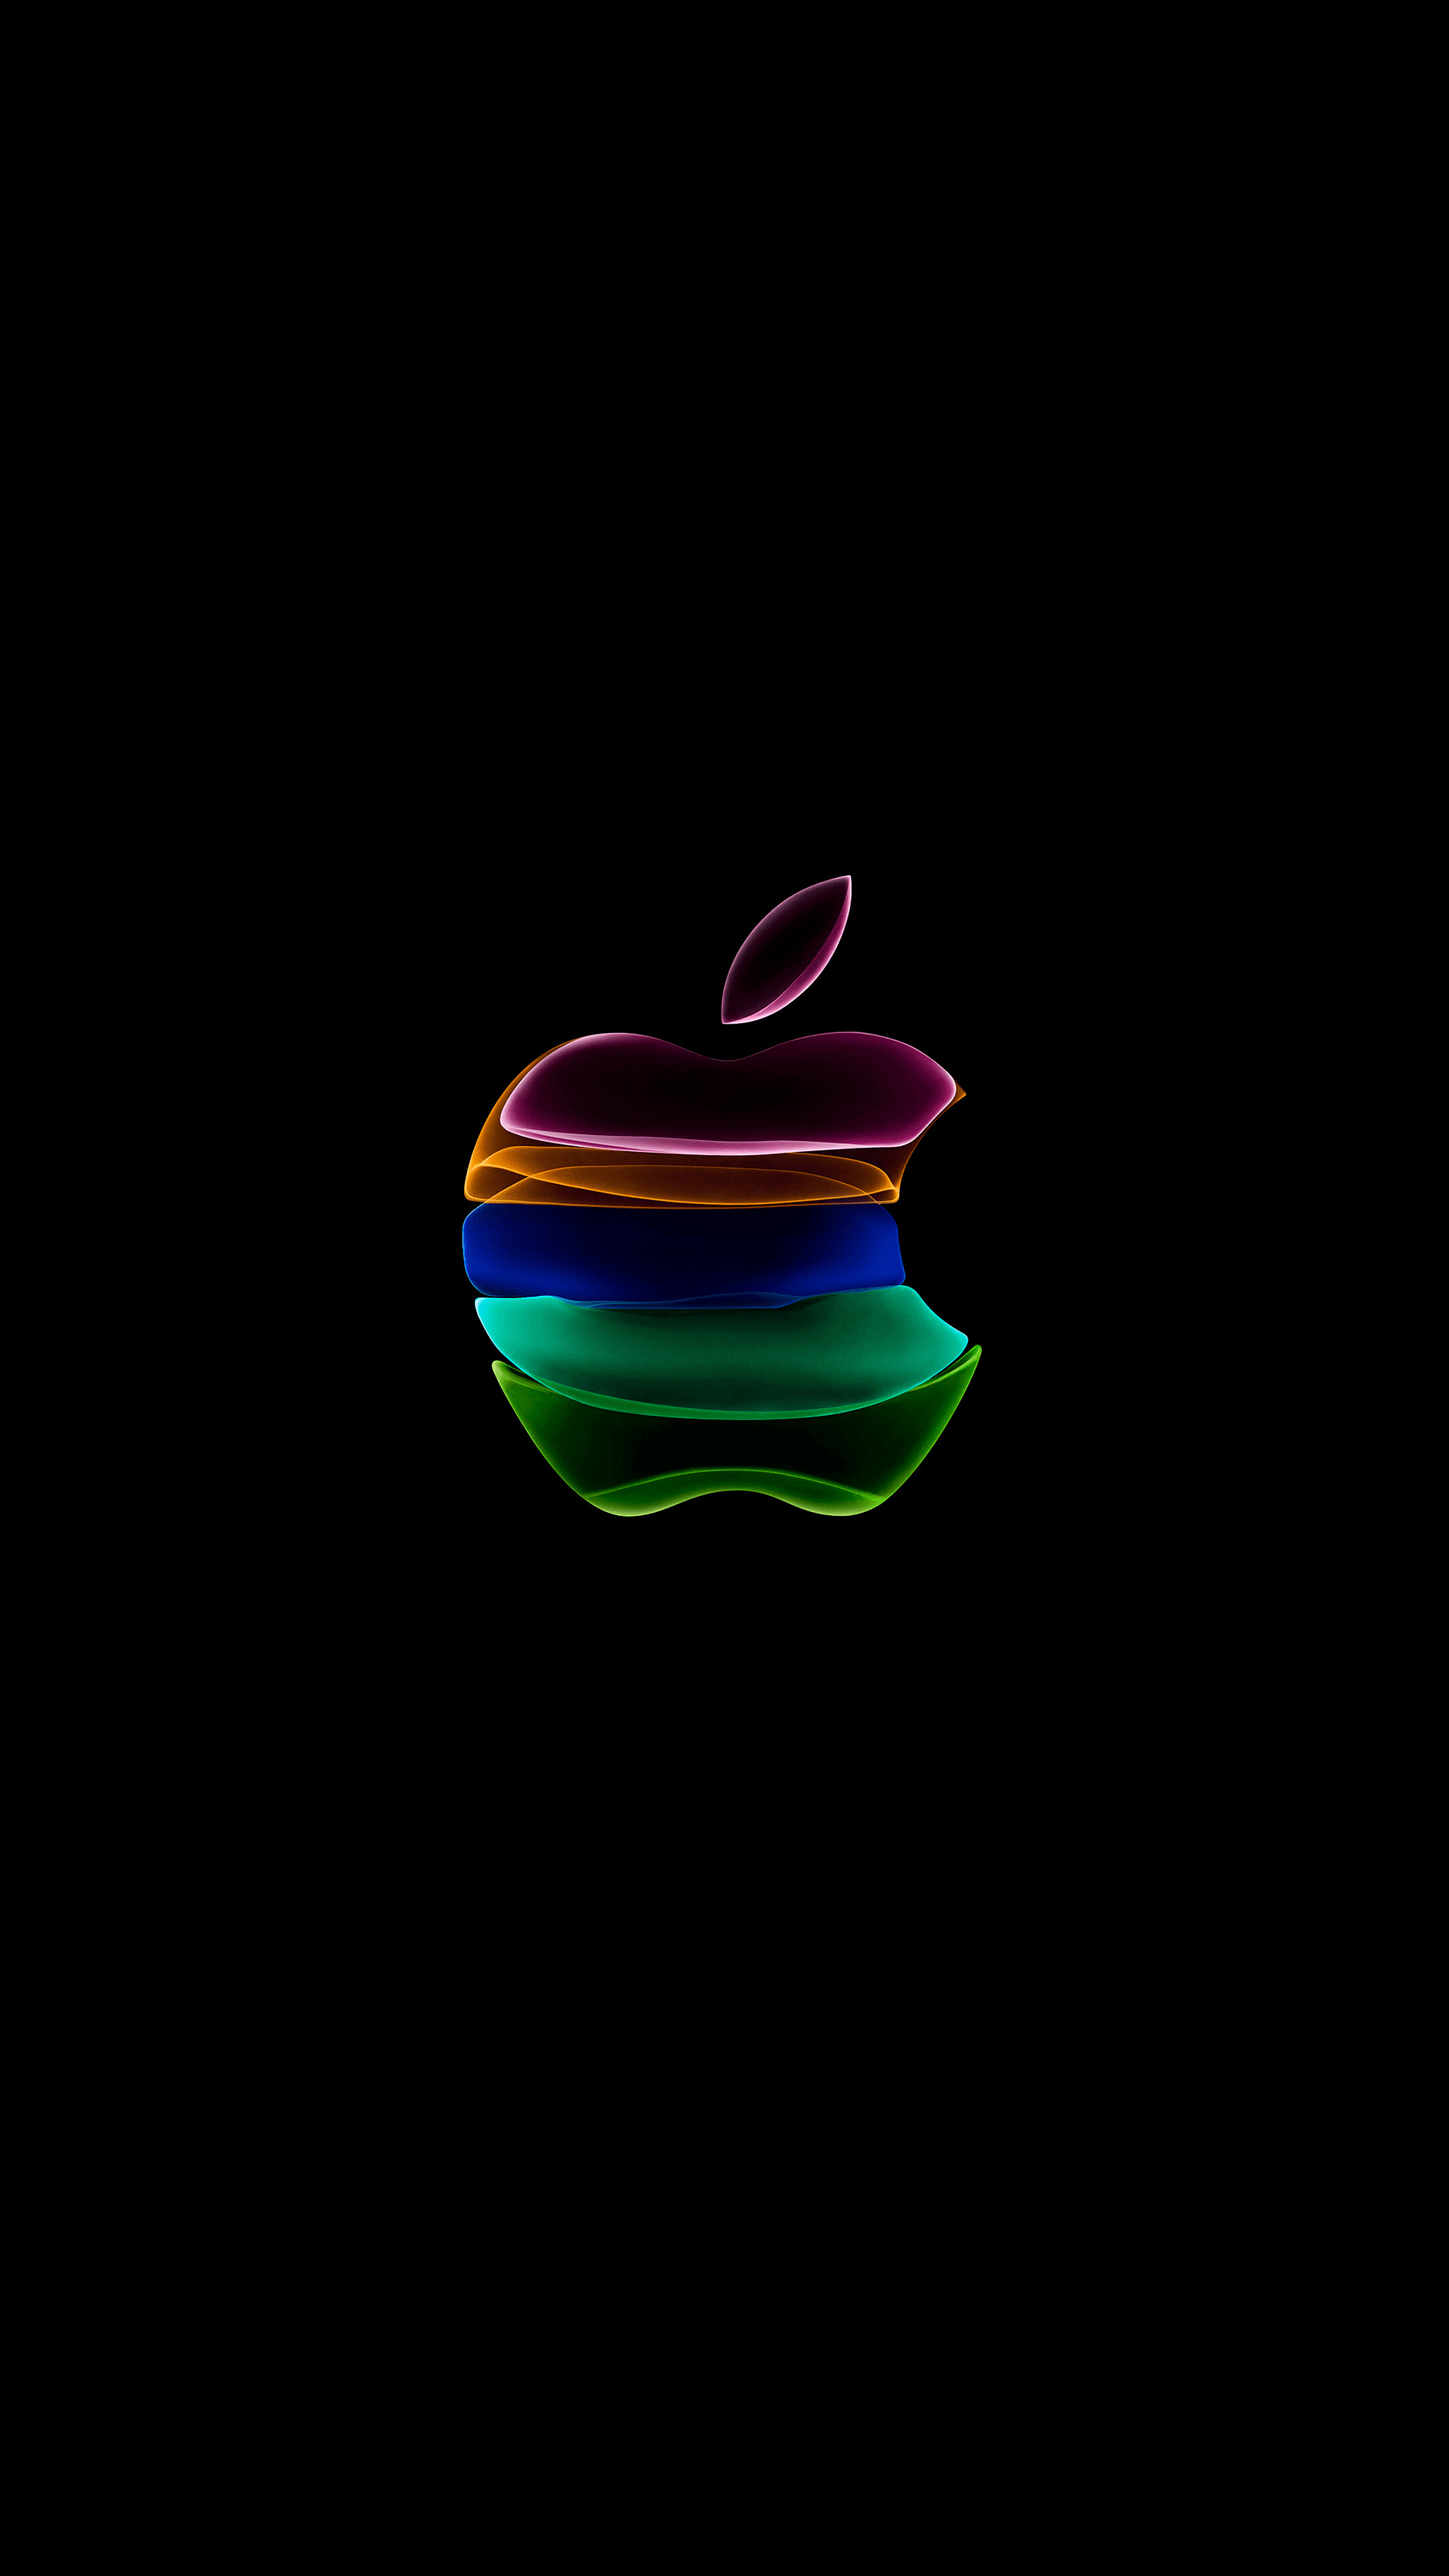 327293 iPhone 11 Apple Logo Black phone HD Wallpapers Images 2160x3840